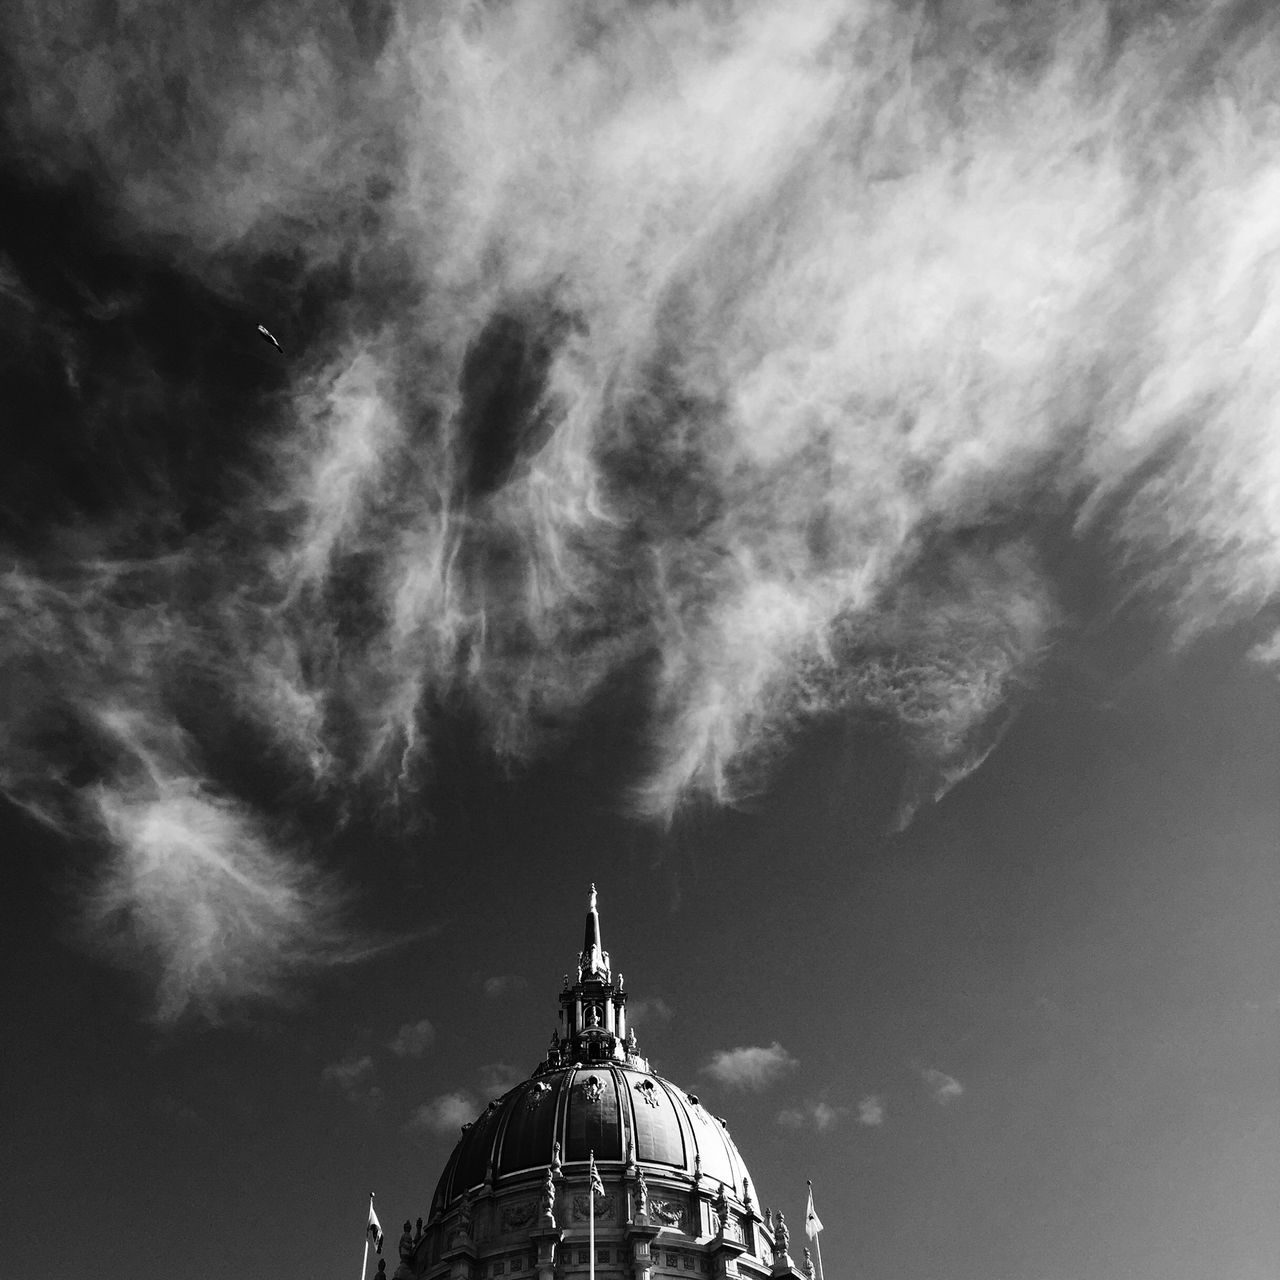 San Francisco City Hall, San Francisco, USA. Architecture Black And White Building California Cloud - Sky Clouds Day IPhone IPhoneography Monochrome Monochrome Photography No People Outdoors San Francisco San Francisco City Hall Sky Sky And Clouds Square Statue Travel Destinations USA